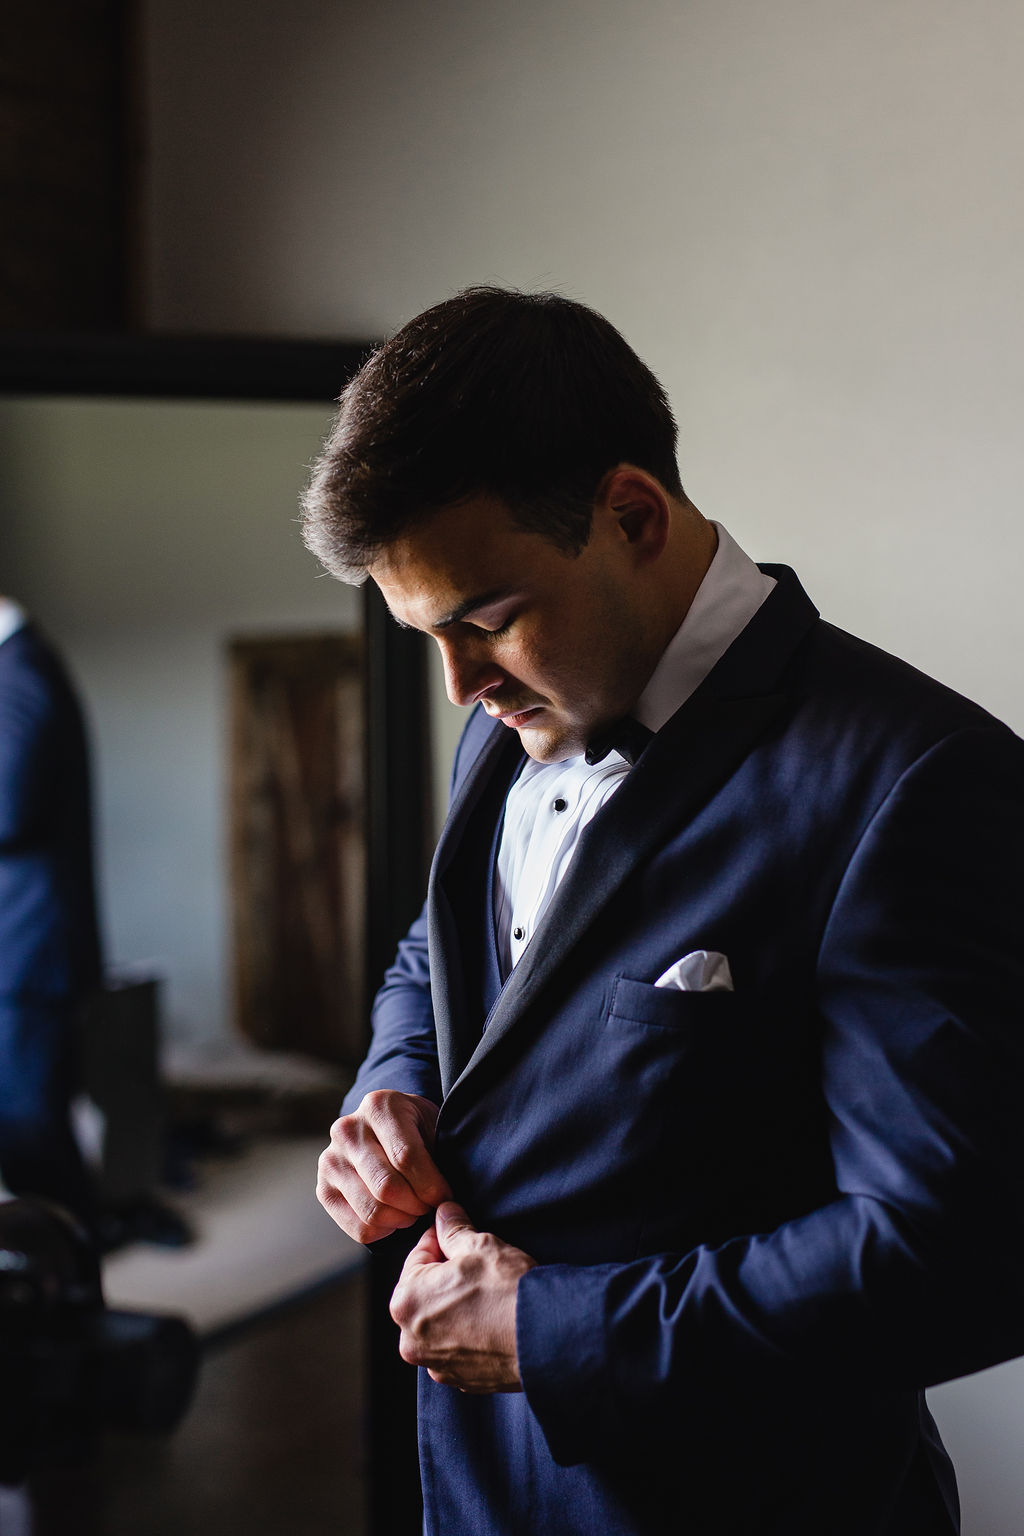 Generation Tux groomsmen attire